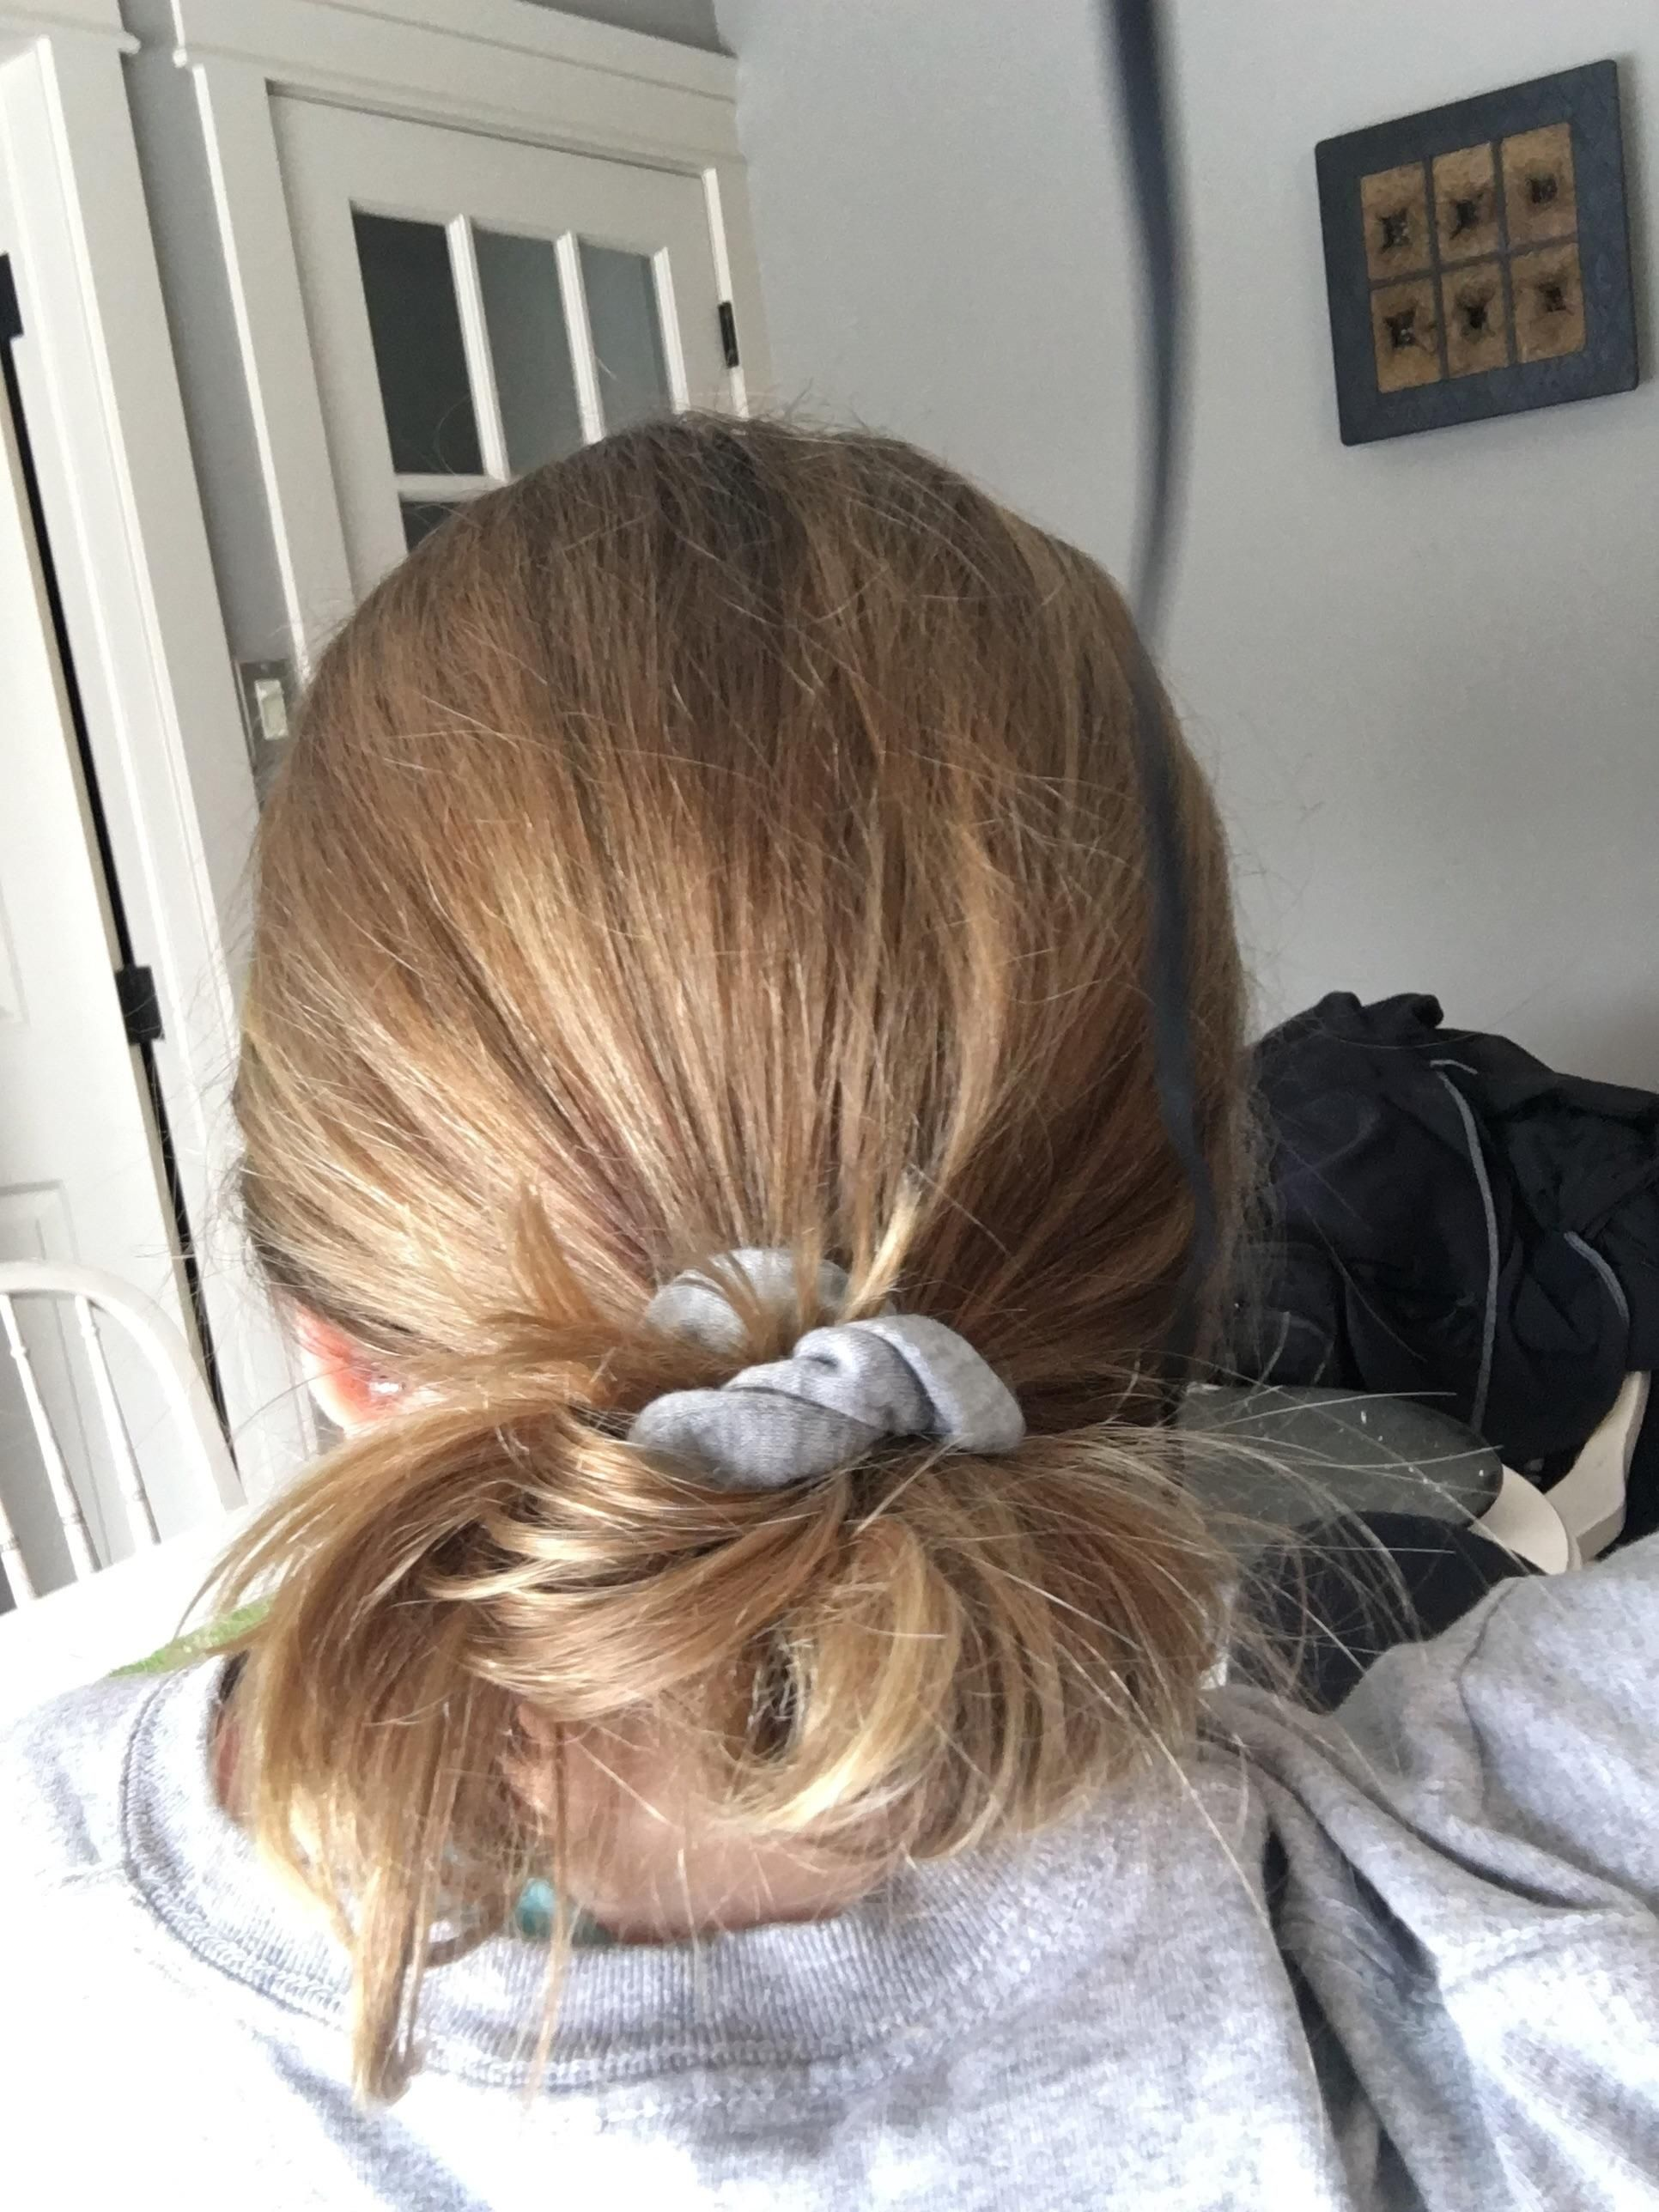 Wanting to dye my hair light ash blonde with platinum highlights. Wondering if anyone knows if I would need to do two treatments on my hair and roughly how much it would cost. This is a picture of my hair colour right now it was bleached around 6 months ago. Thankyou! #hair #beauty #Skin #Deals #me #fashion #love #cute #style #women #makeup #lightashblonde